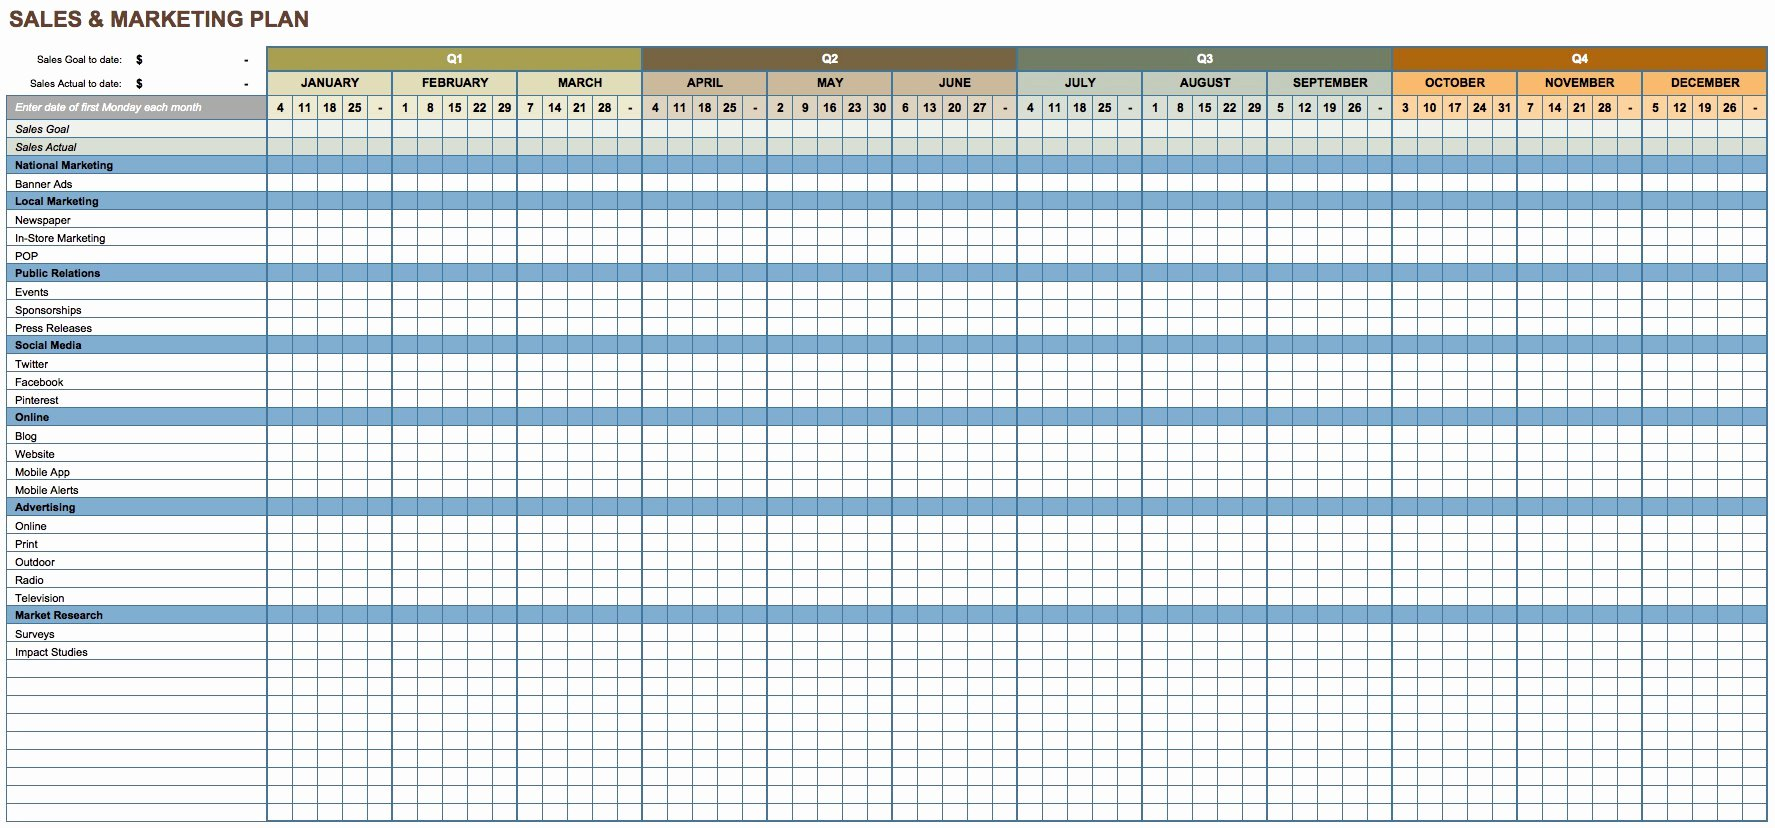 Marketing Timeline Template Excel New Free Marketing Plan Templates for Excel Smartsheet